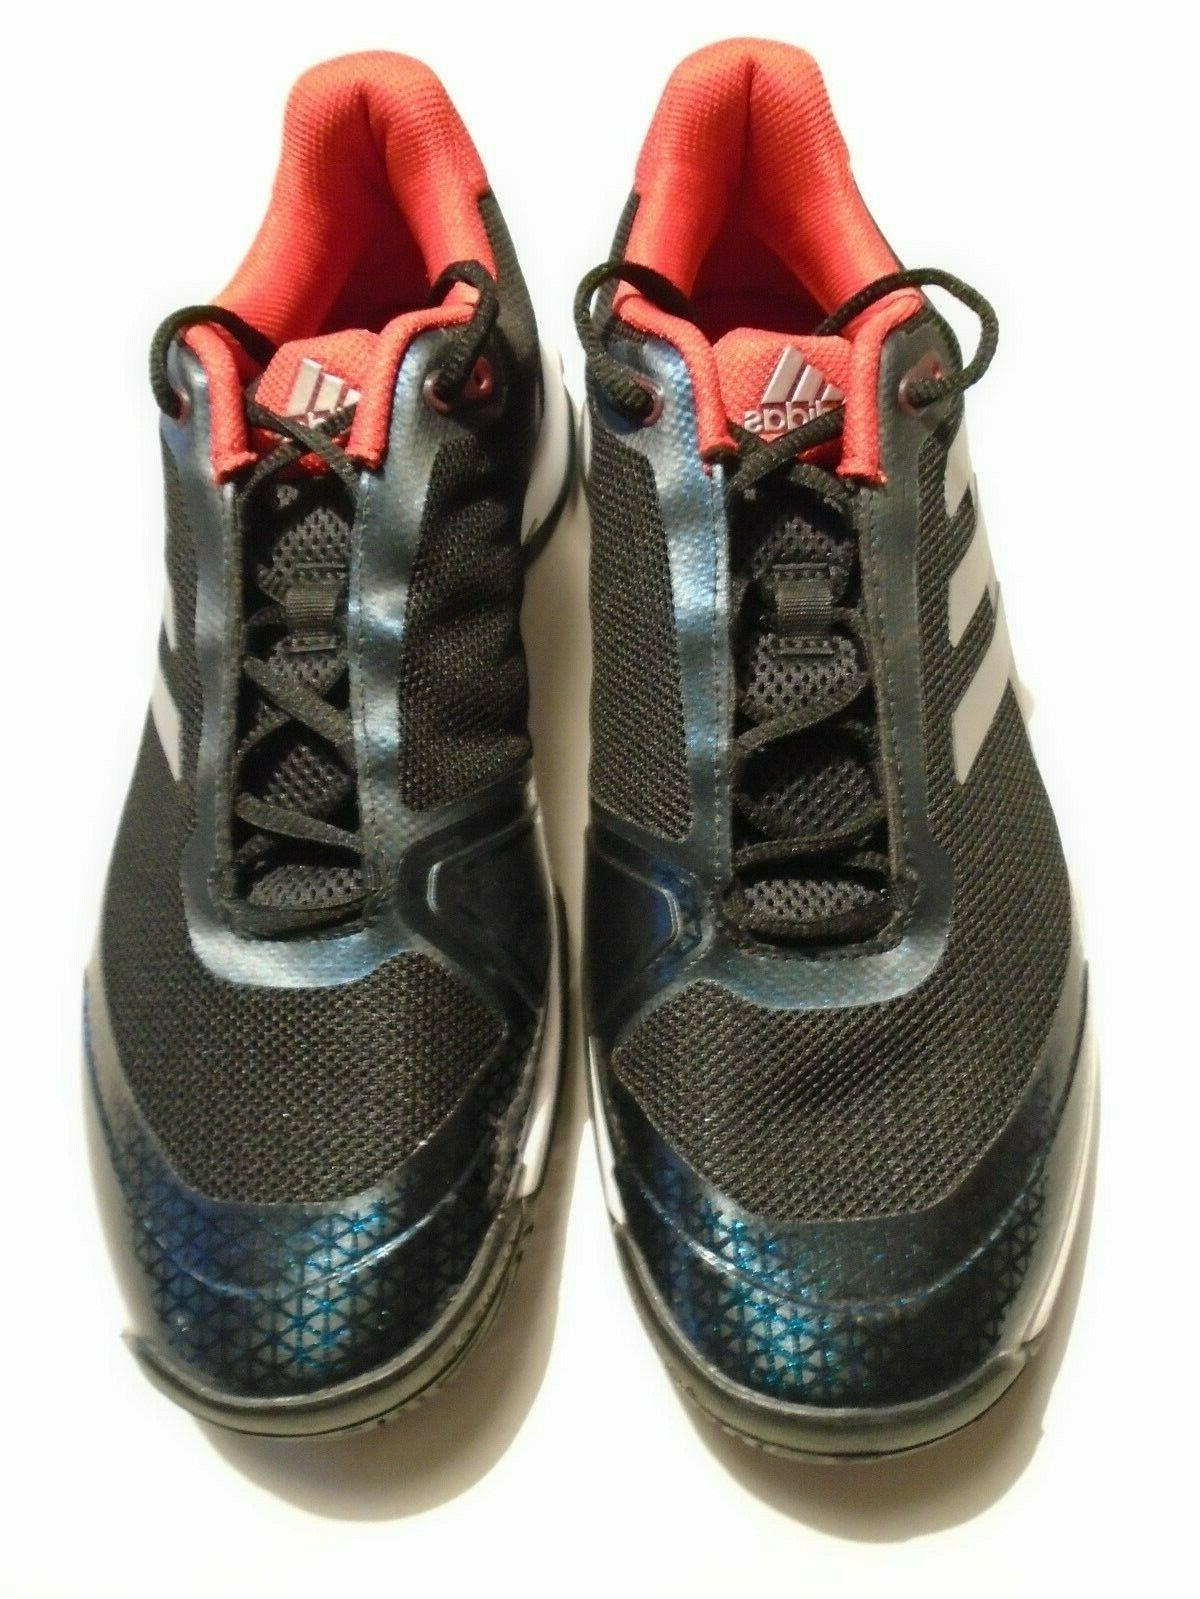 New Adidas Mens Shoes Black Red